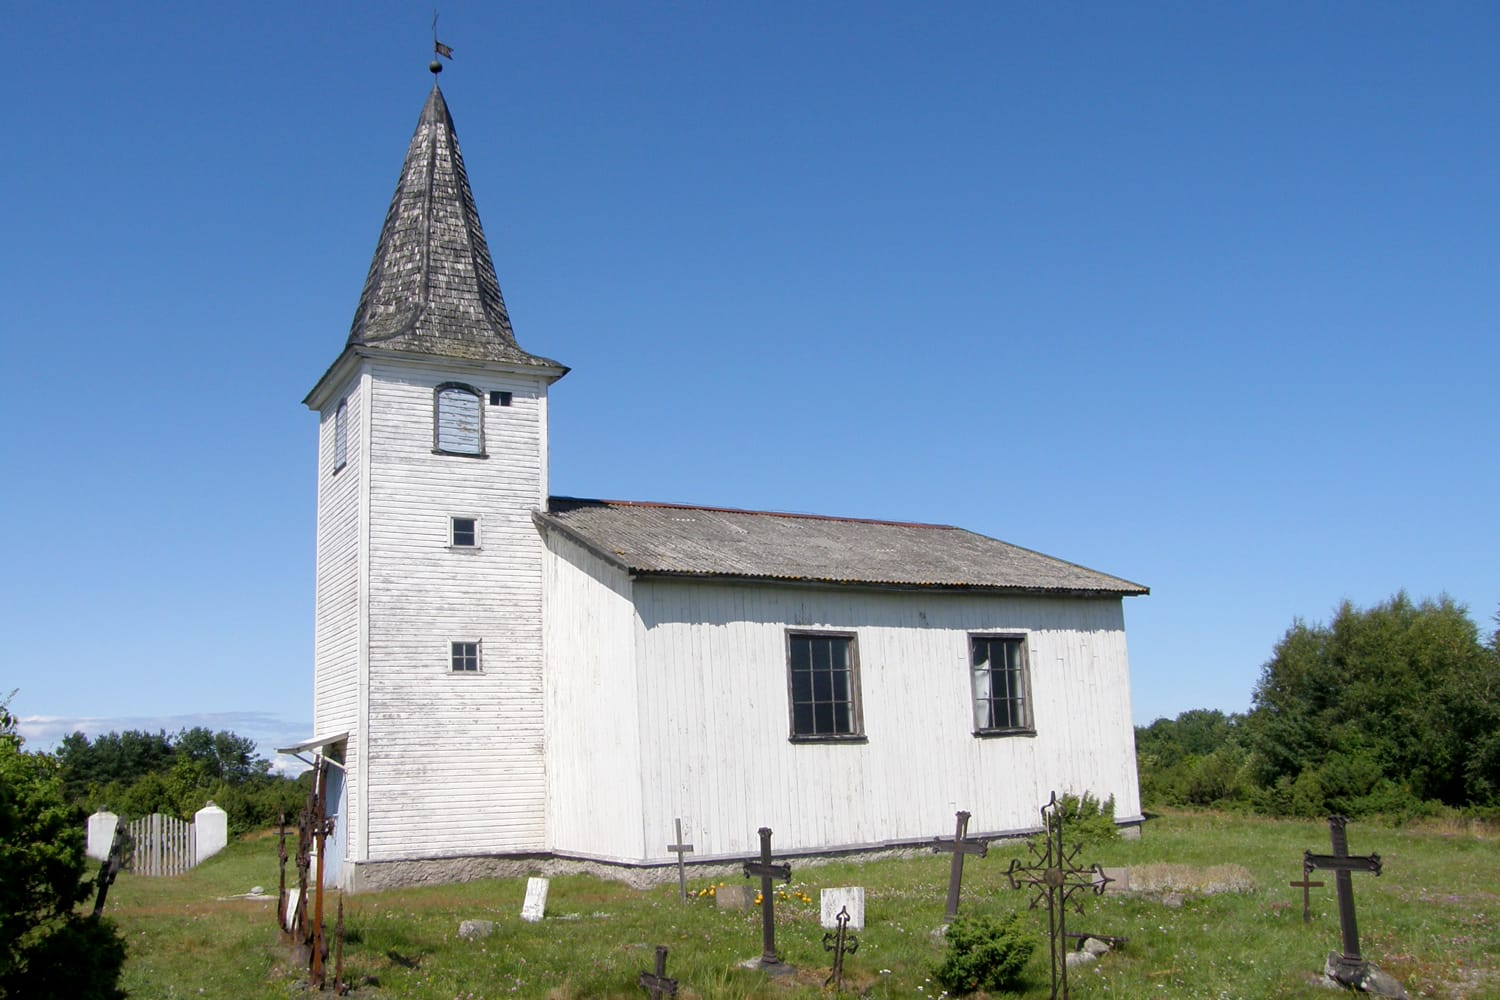 Prangli Church of Laurentius in Estonia